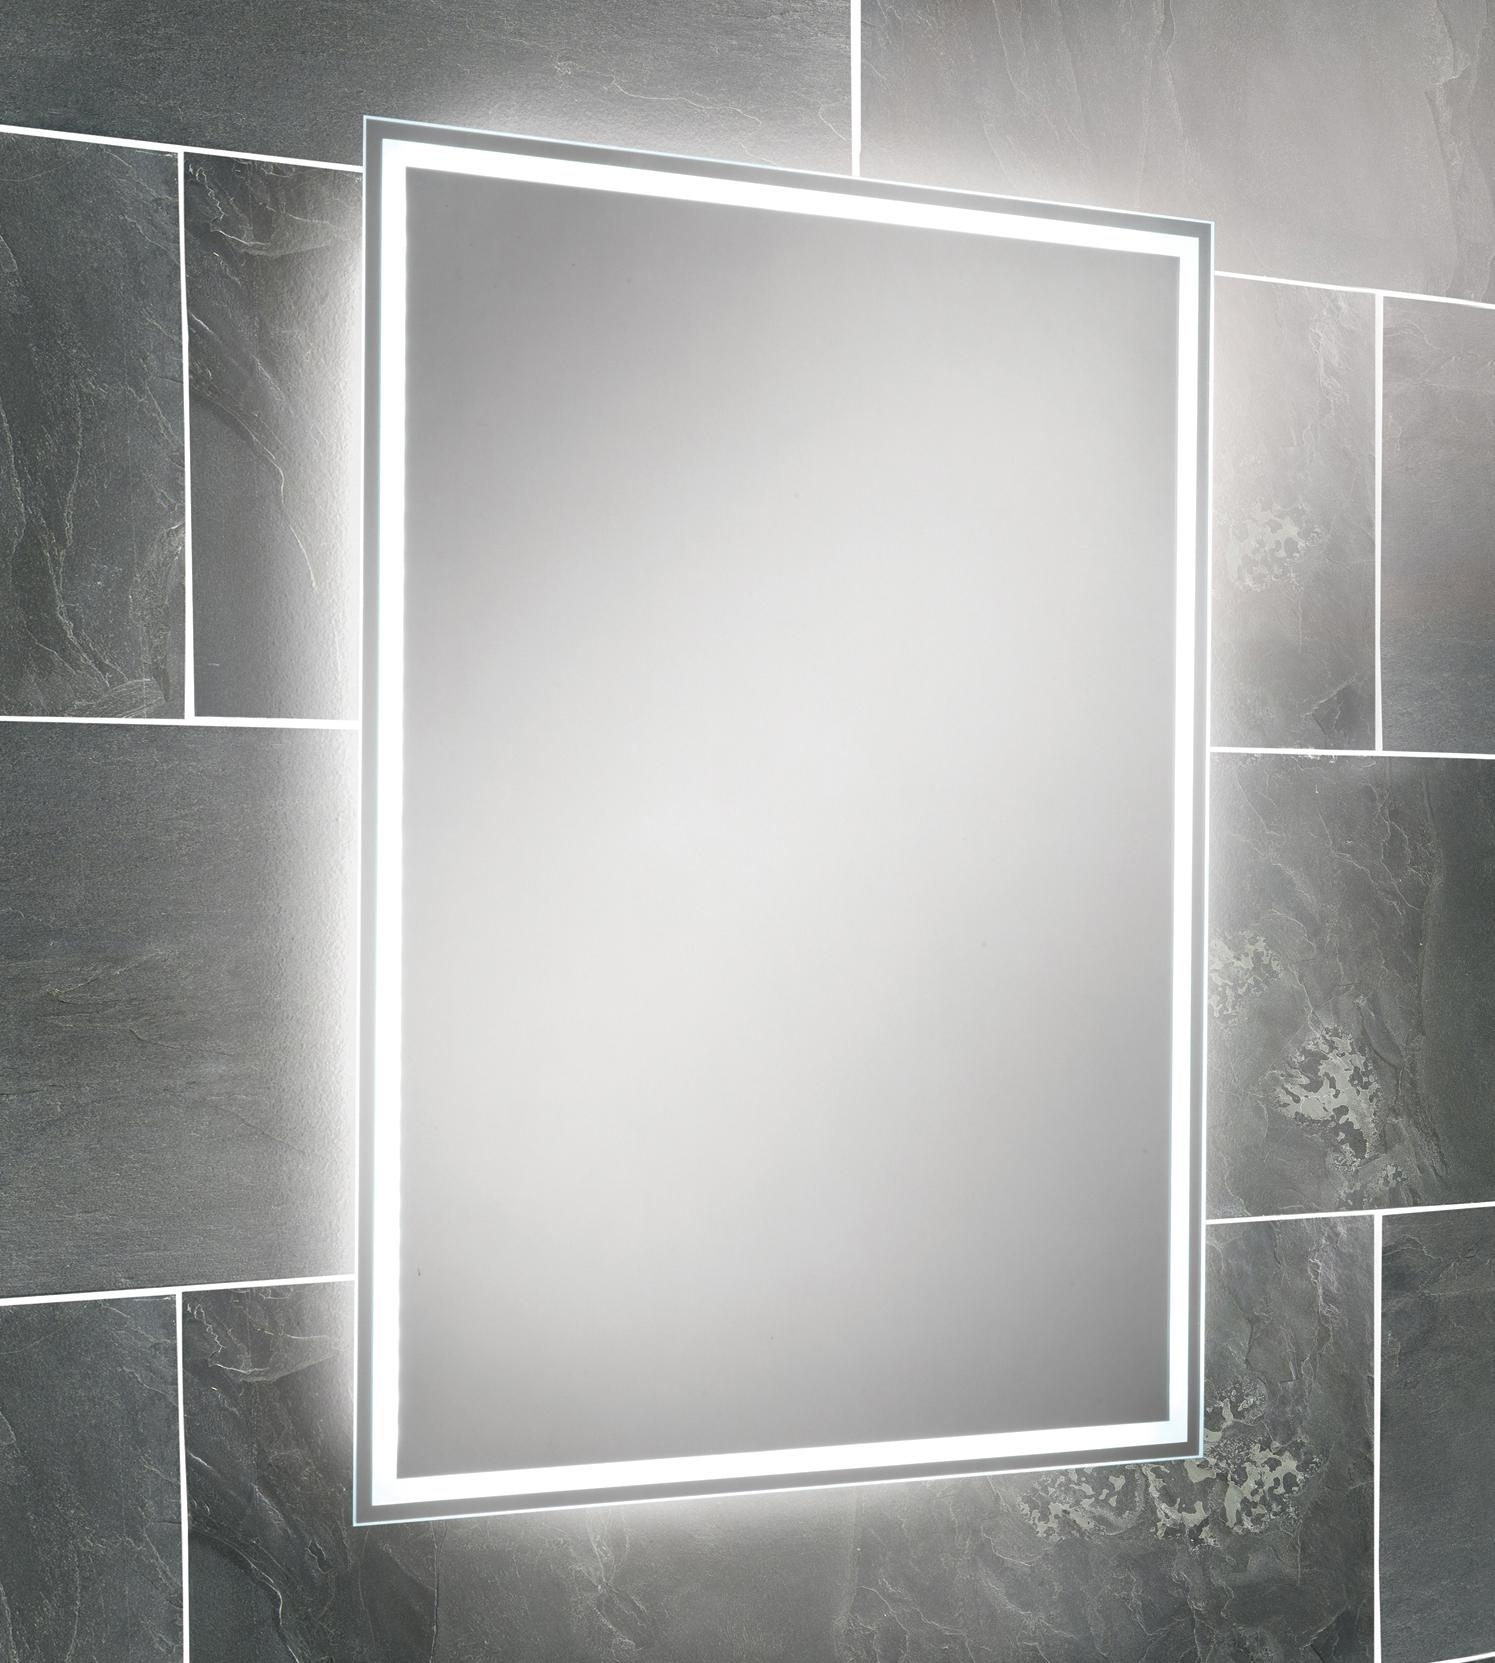 Bathroom : Clever Design Bathroom Mirror Led Lights Strip Demister Throughout Led Illuminated Bathroom Mirrors (Image 2 of 20)